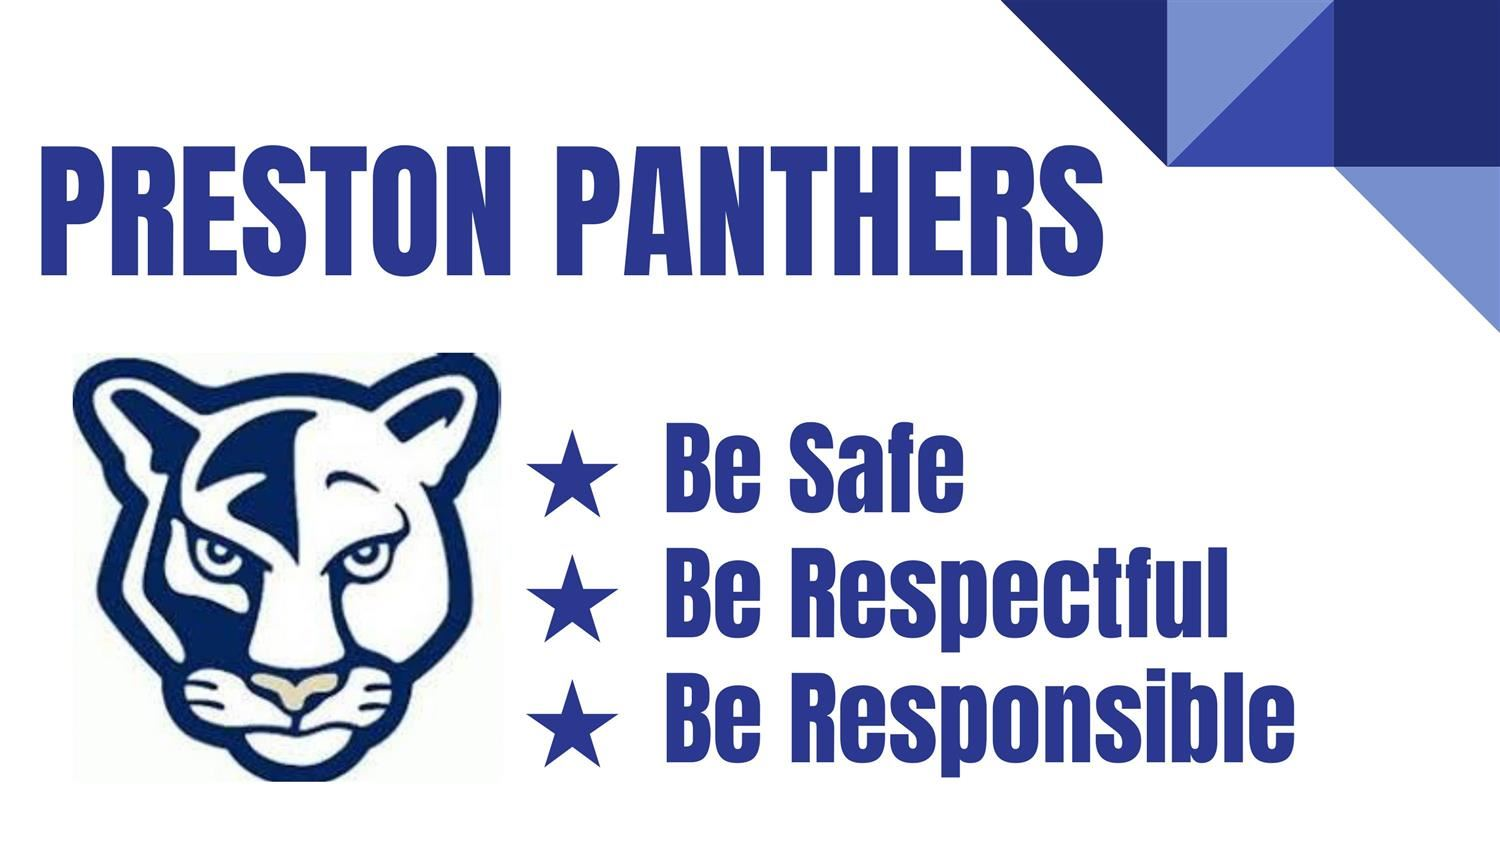 preston panthers be safe, respectful, responsible